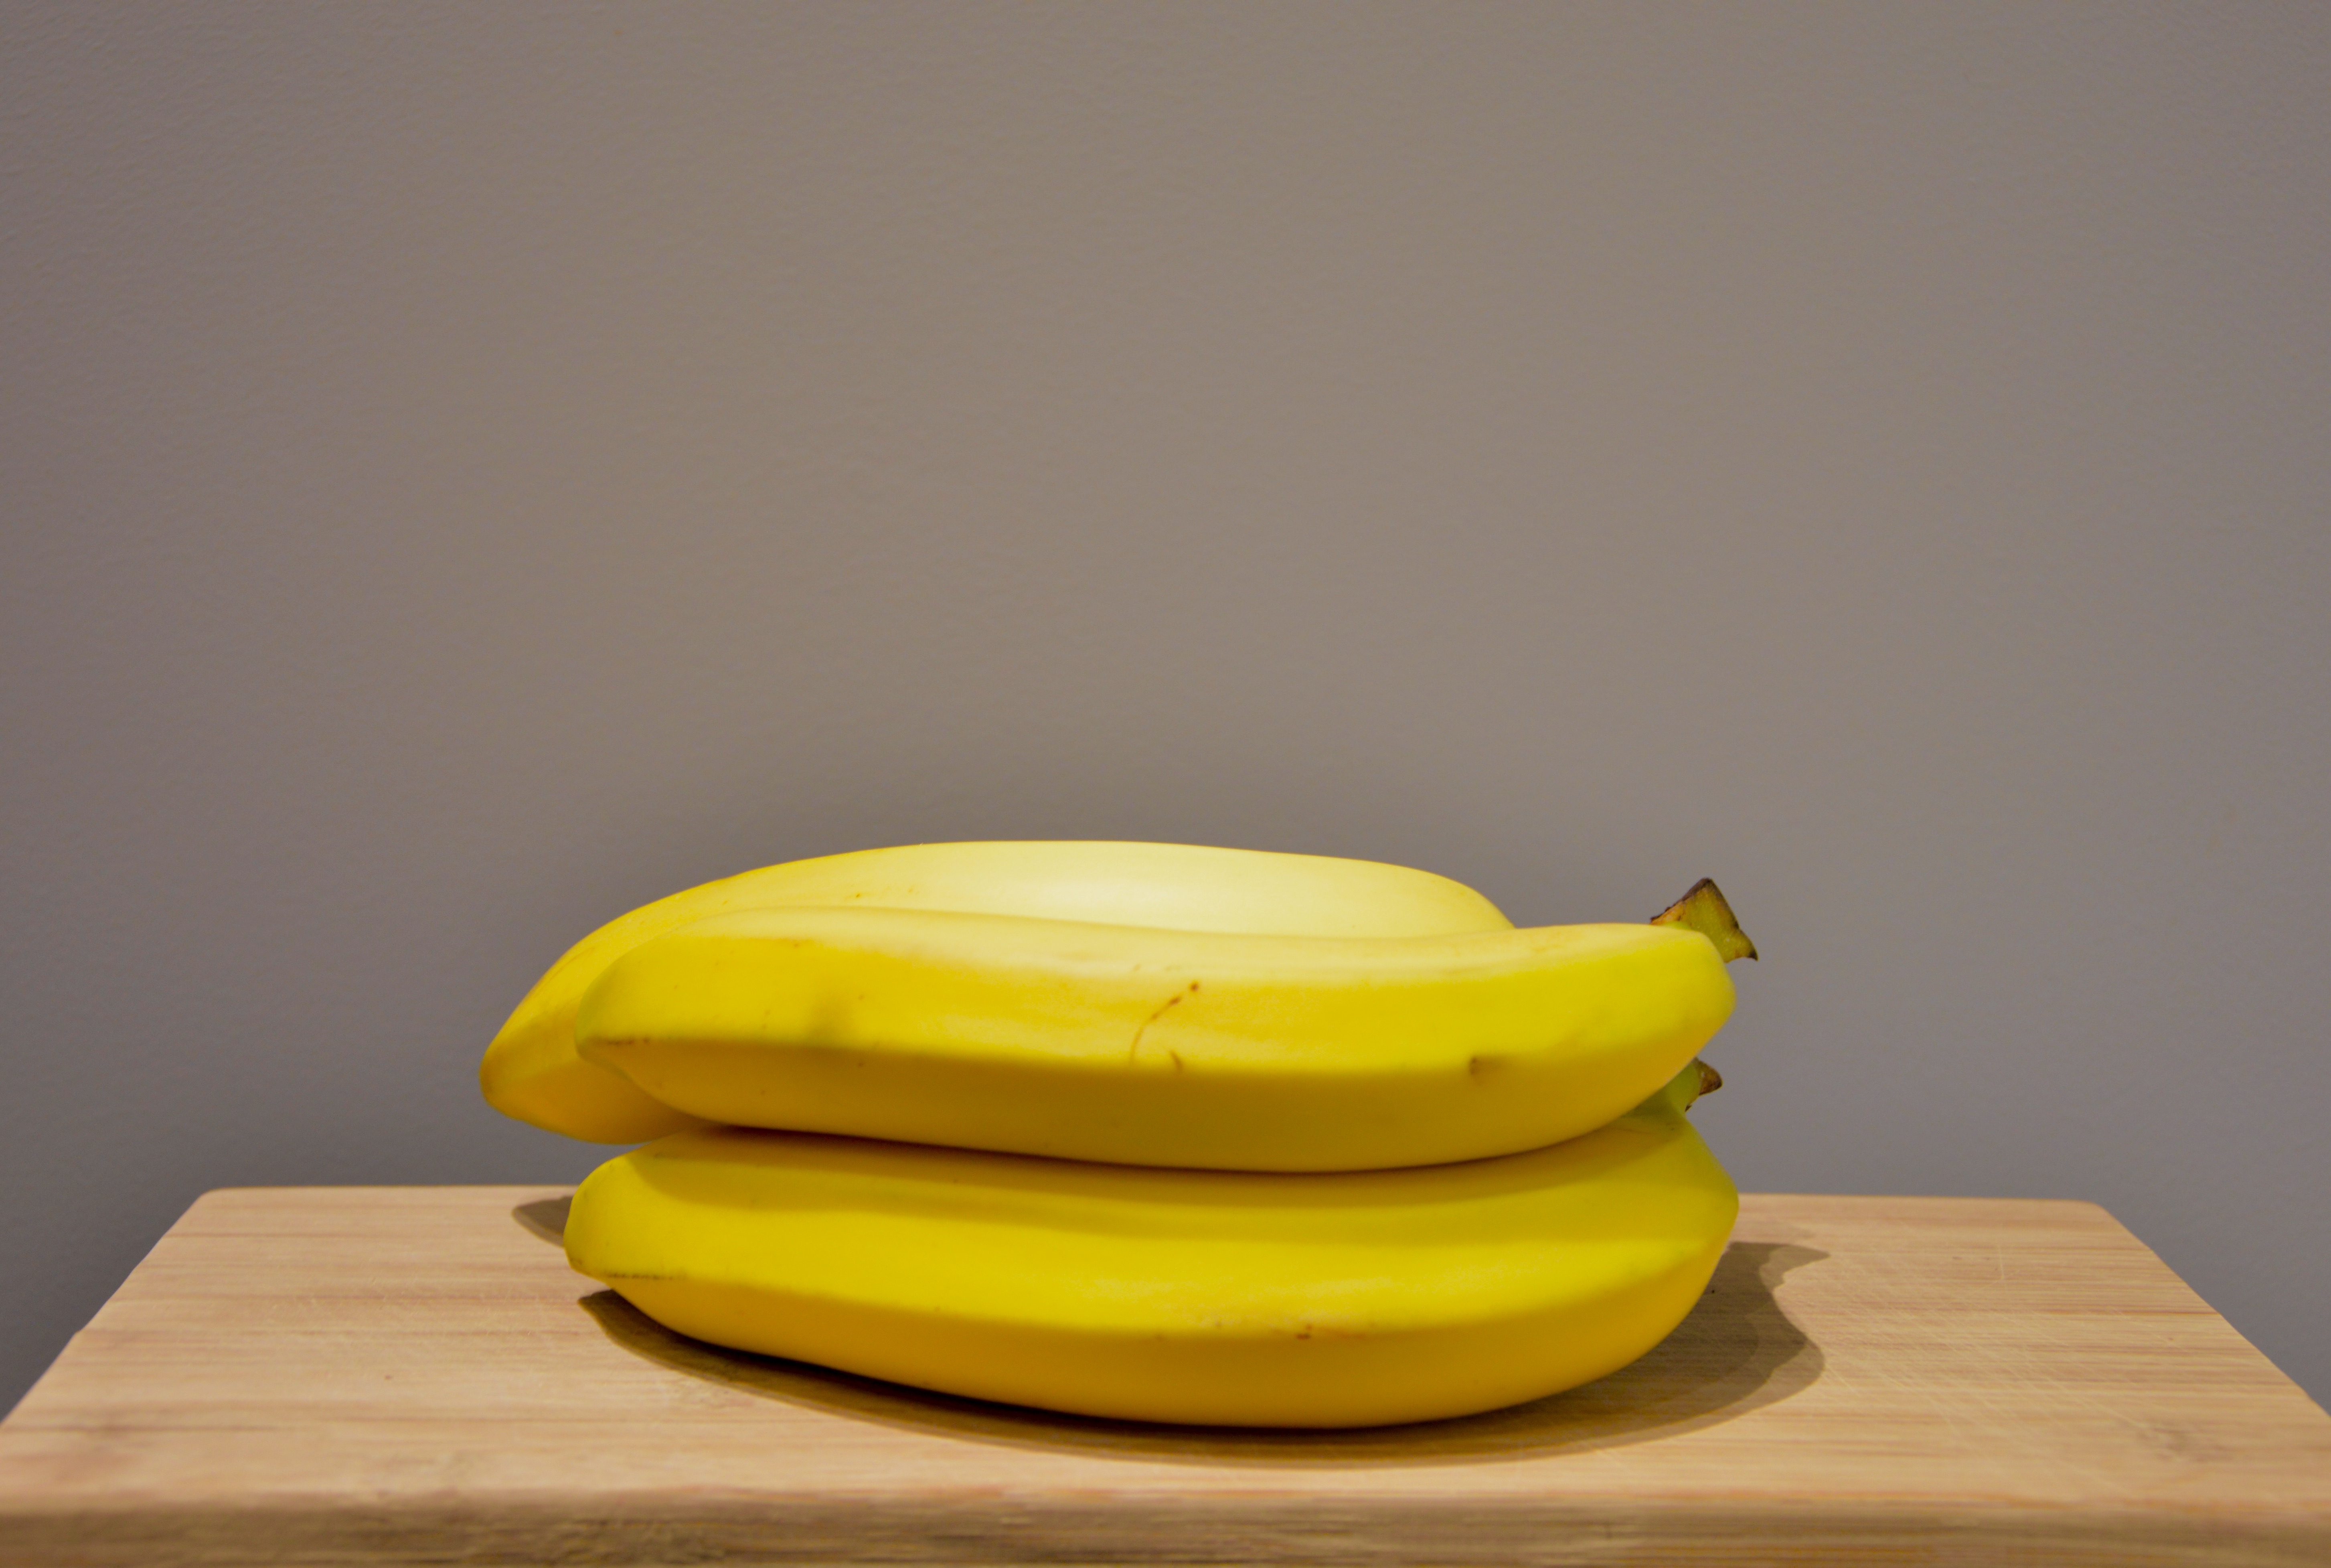 Yellow Bananas On An Oak Wood Table 183 Free Stock Photo